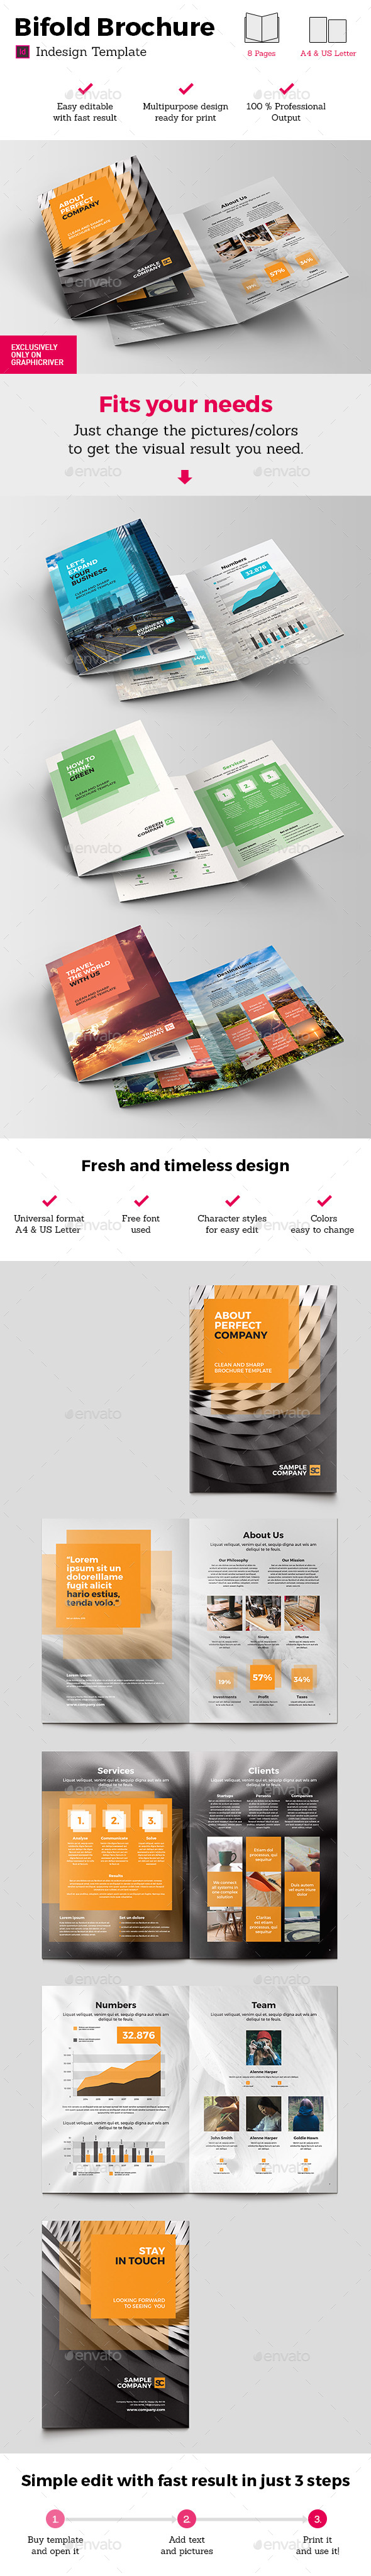 Universal Bifold Brochure Indesign Template - Brochures Print Templates